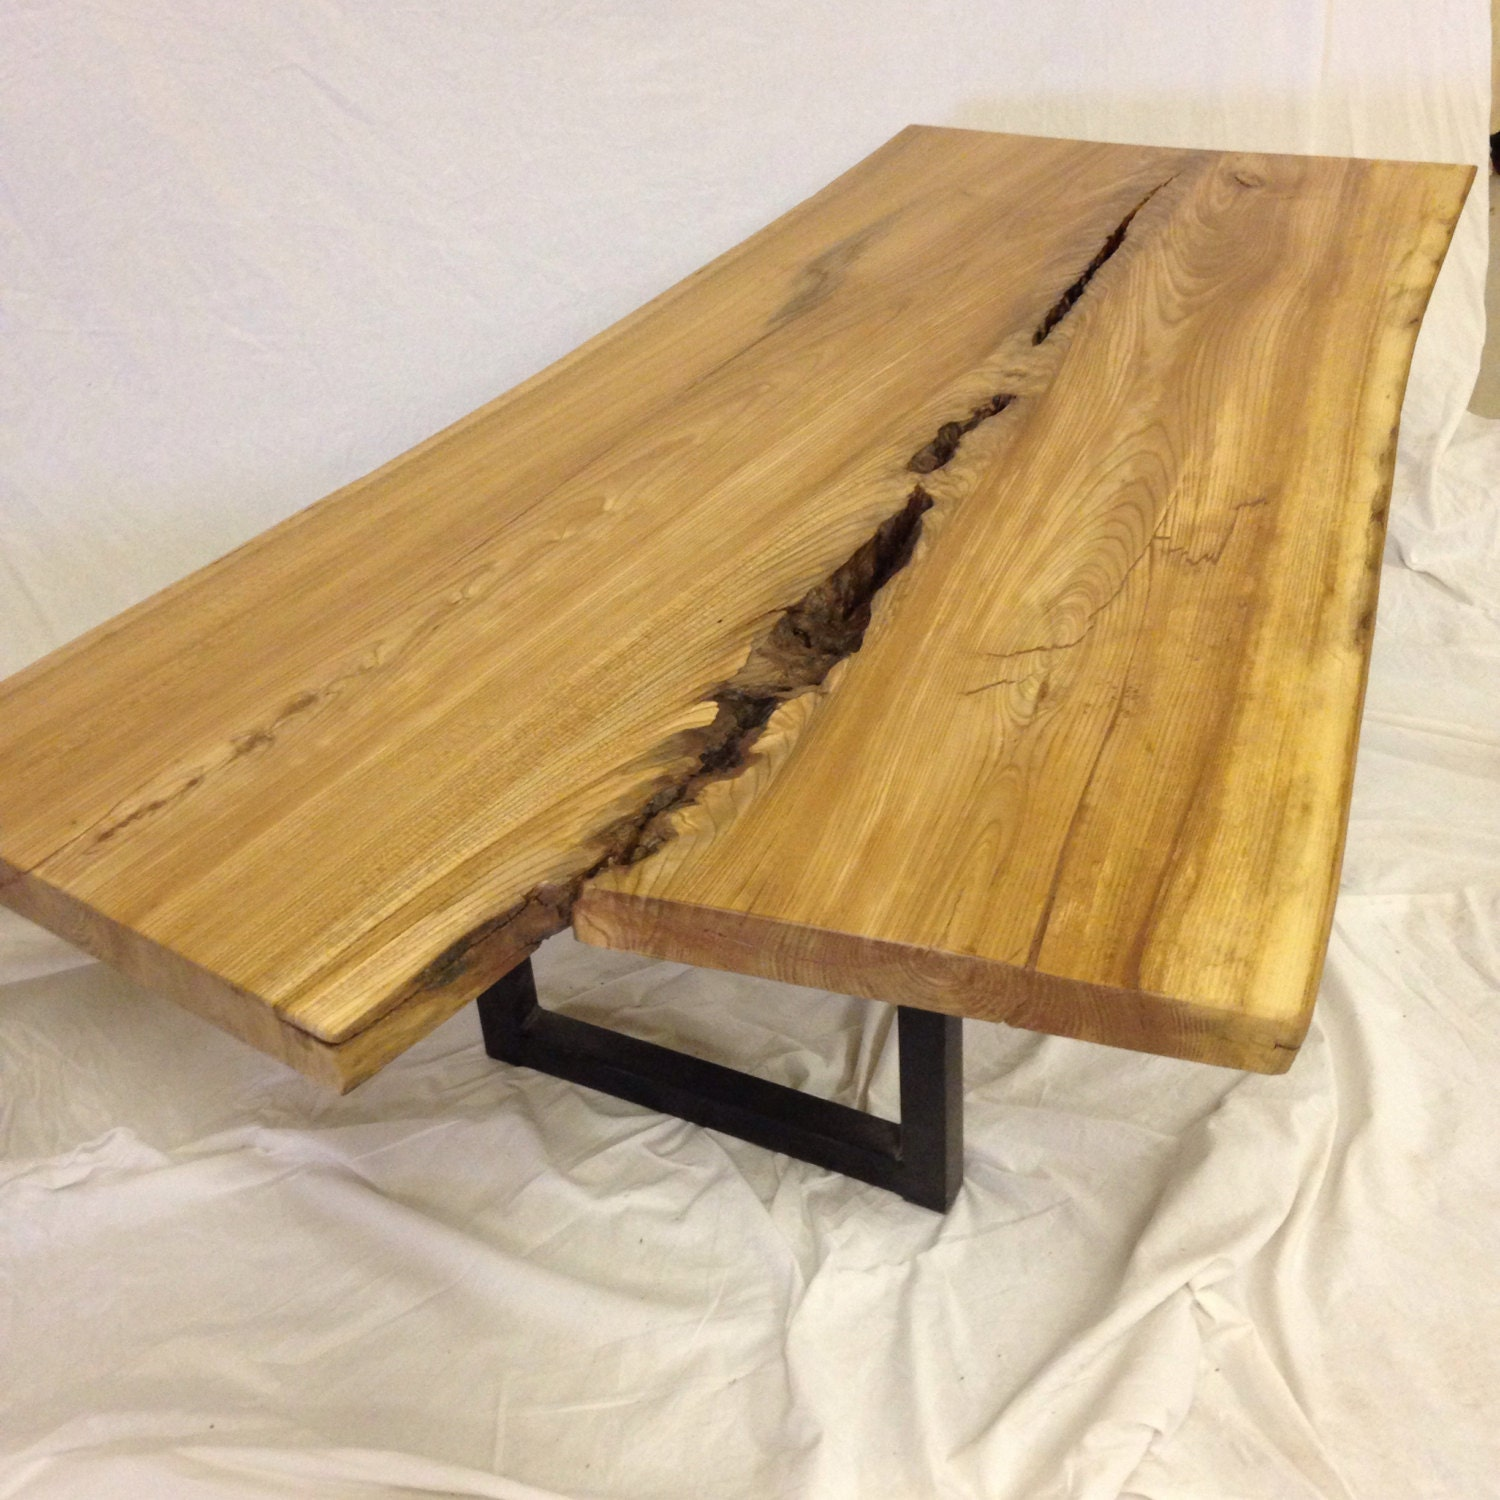 Live Edge Coffee Tables Live Edge Table Live By Urbanwoodllc